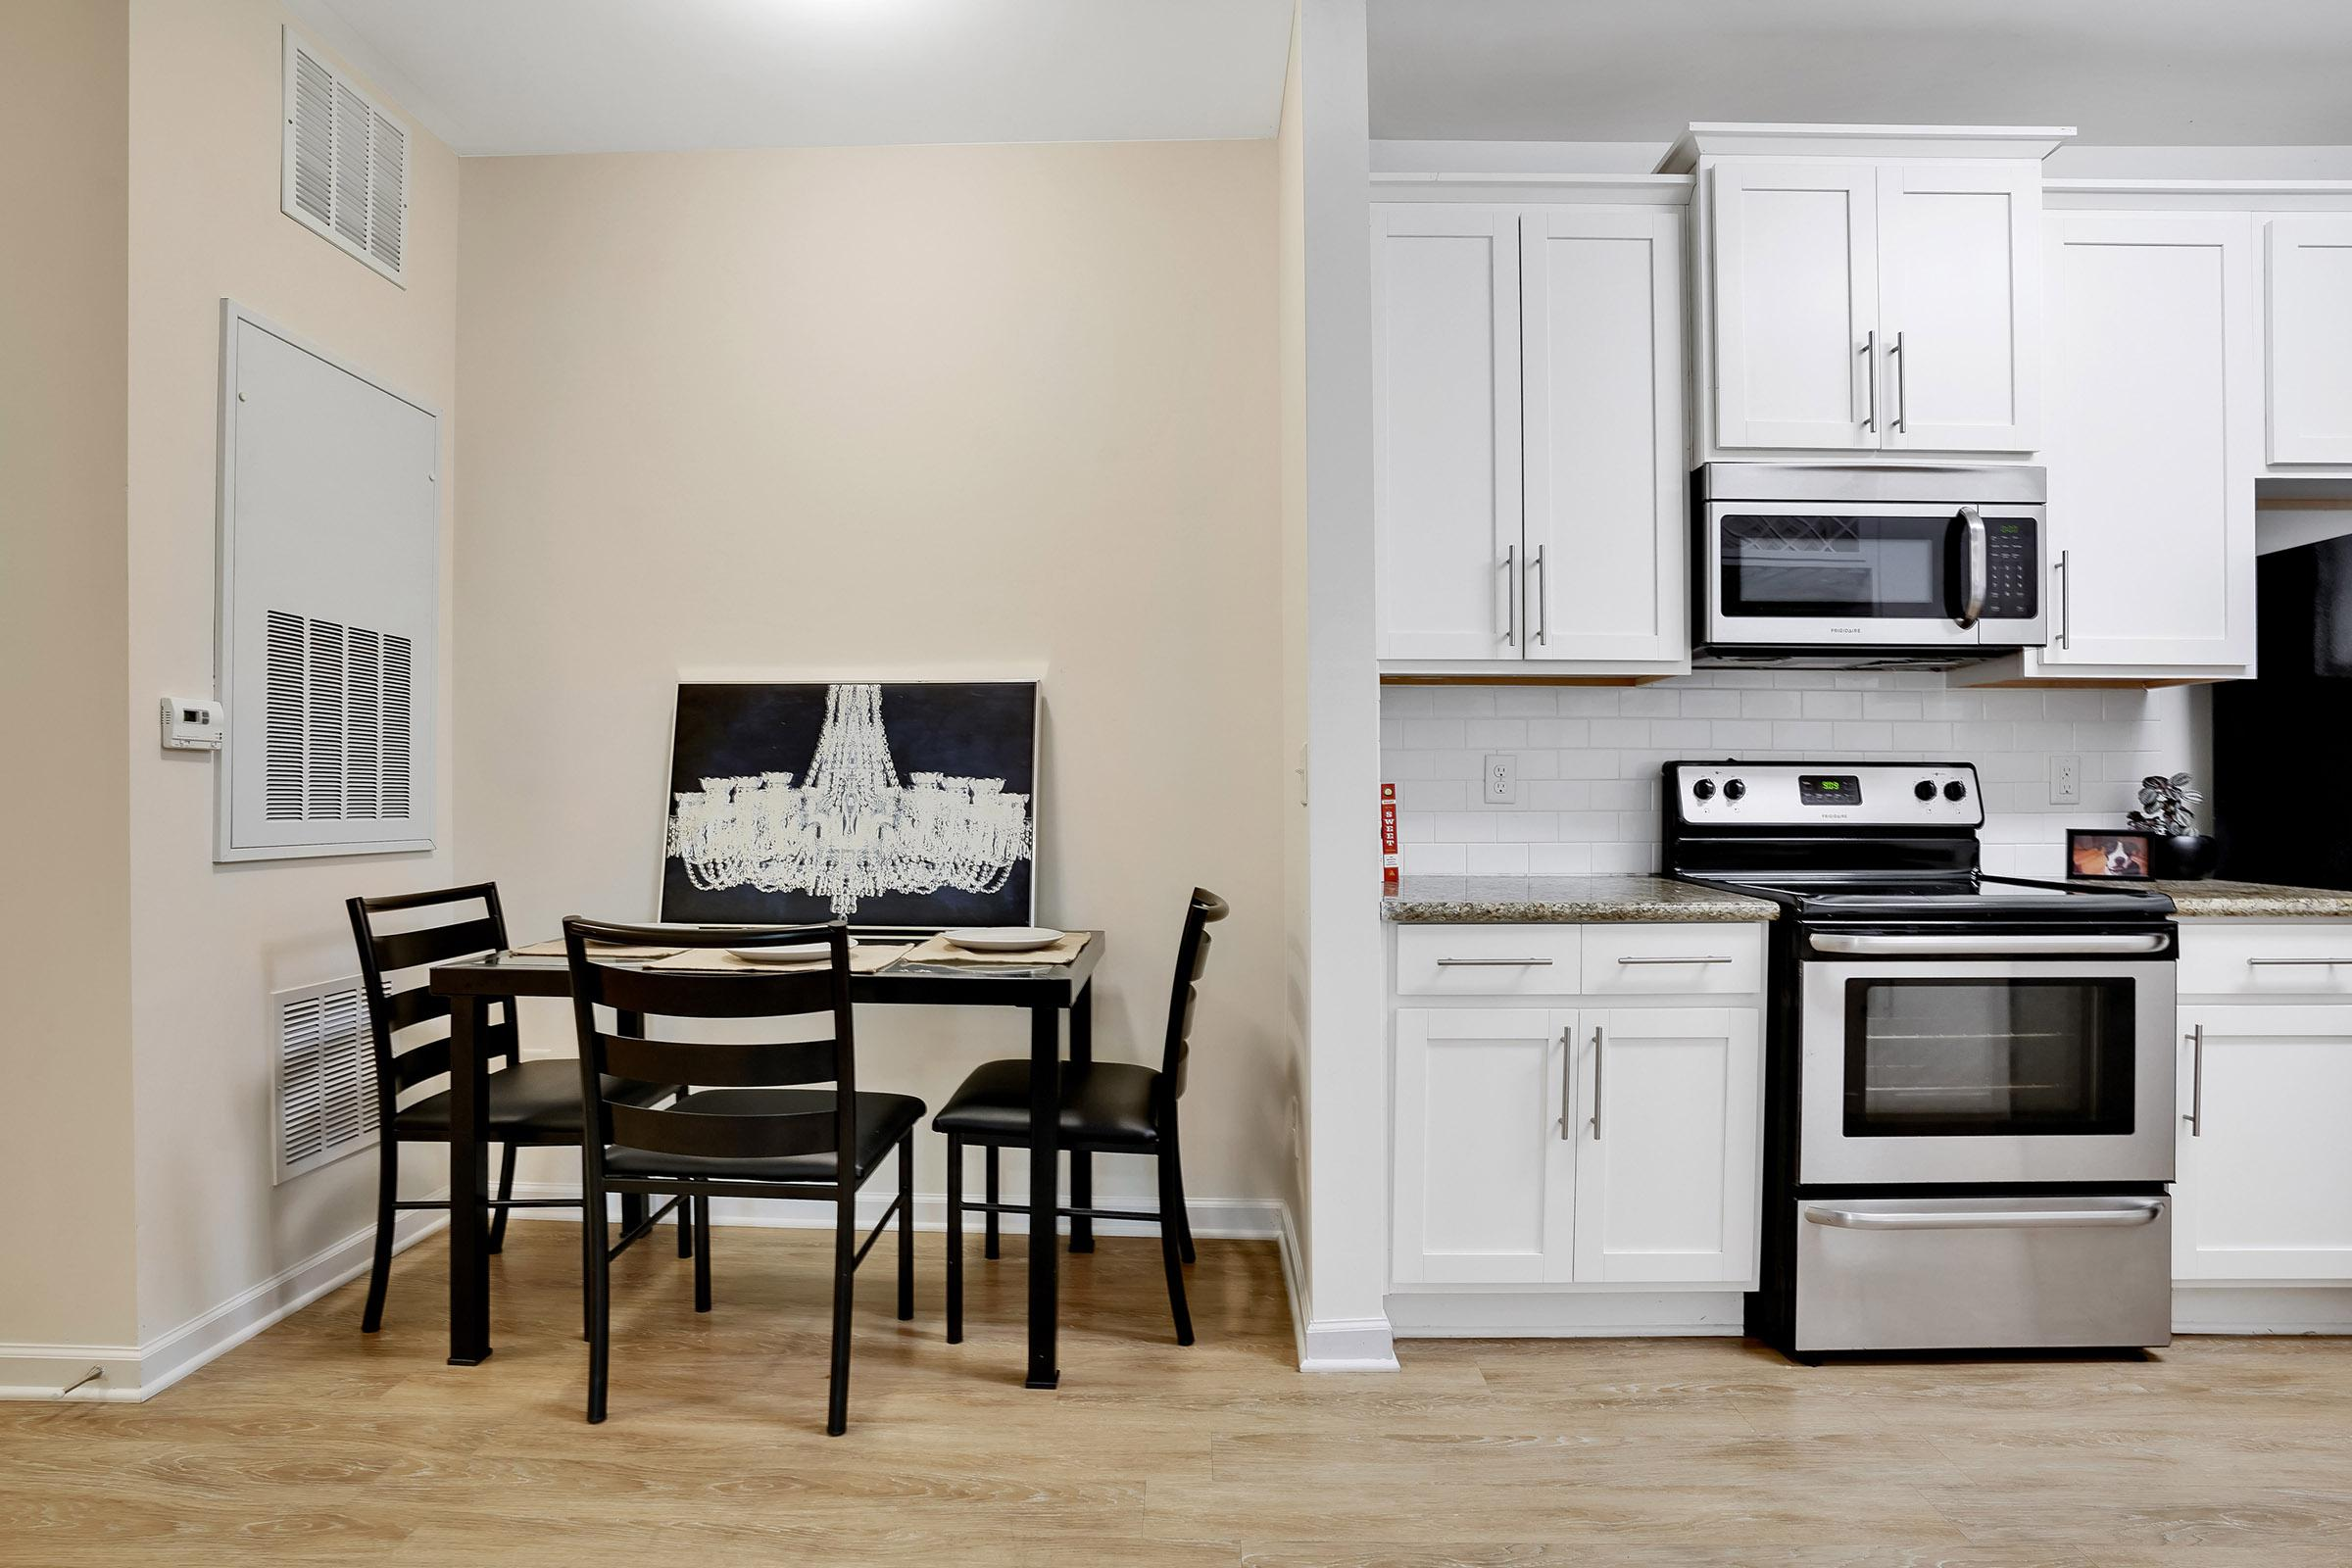 a kitchen with white cabinets and a black chair